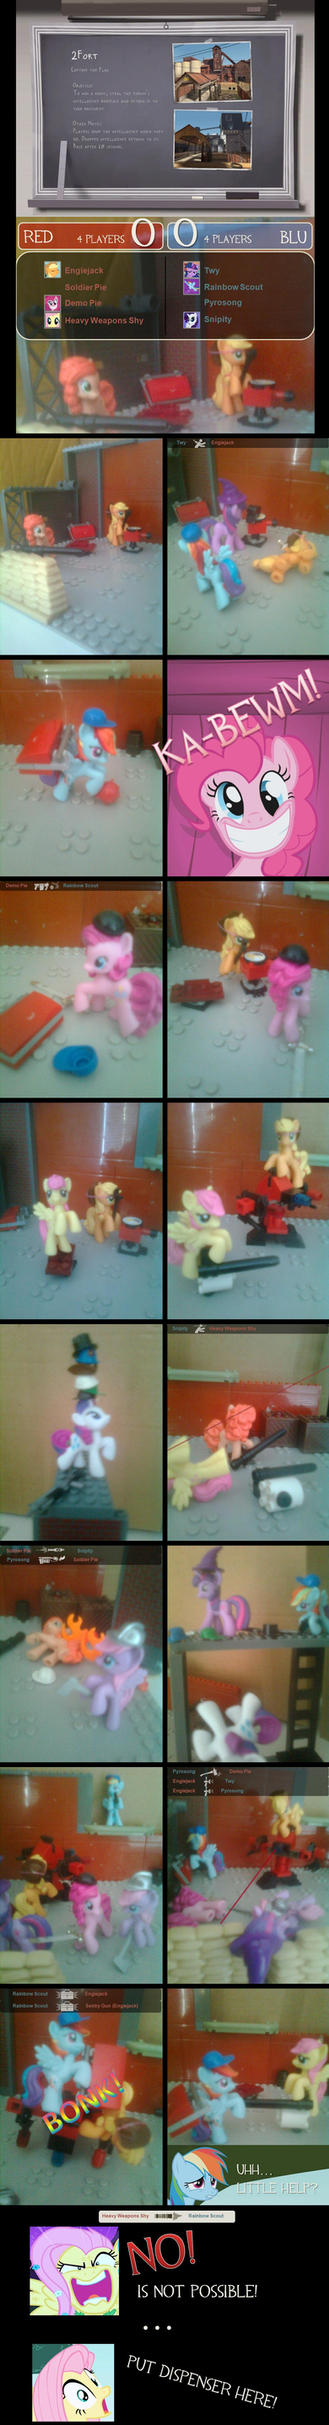 My LEGO Pony, Teamwork in Fortress by ReyJJJ